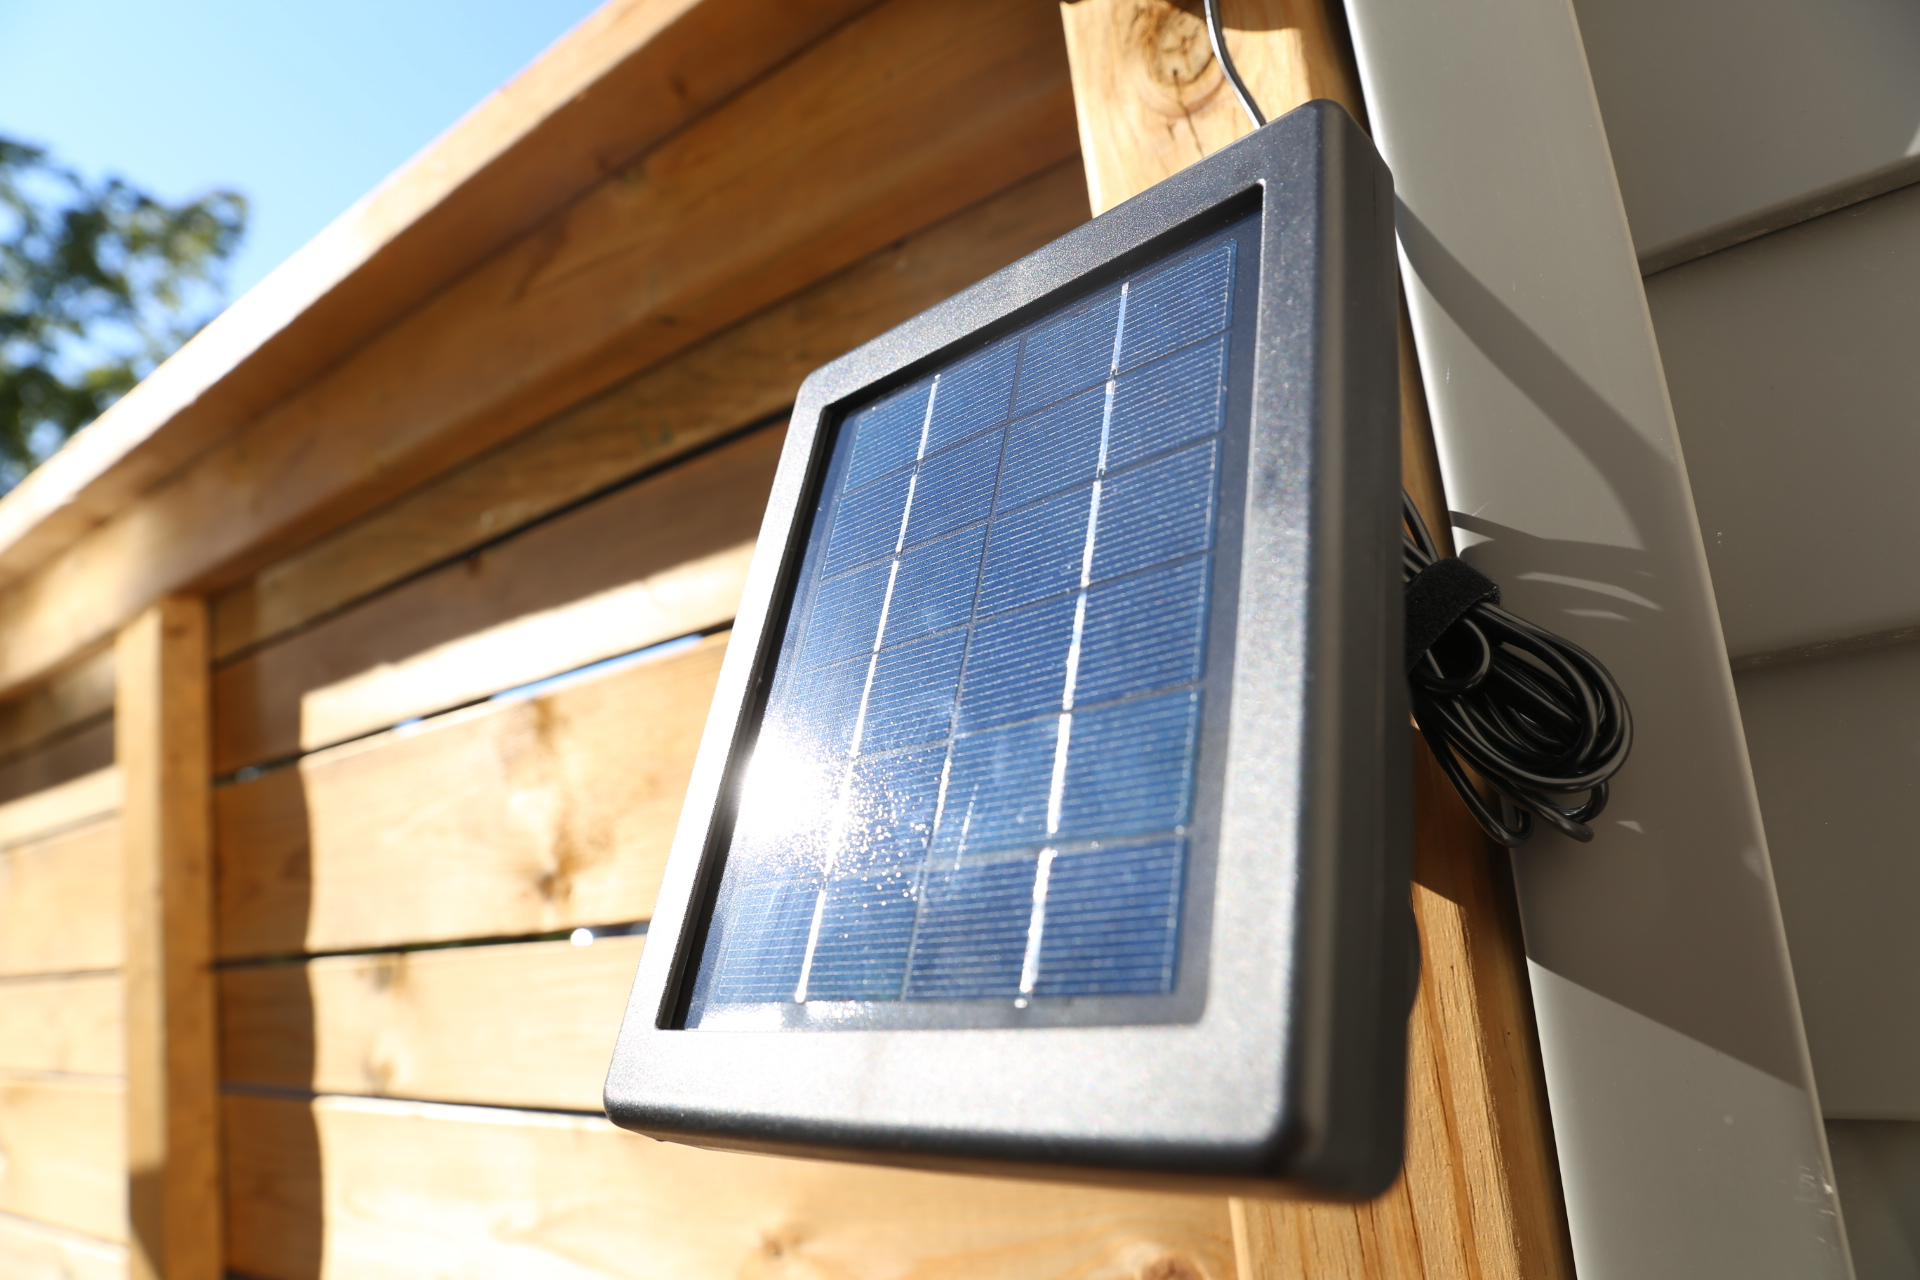 Ring Stick Up Cam And Solar Panel Combo Provides Peace Of